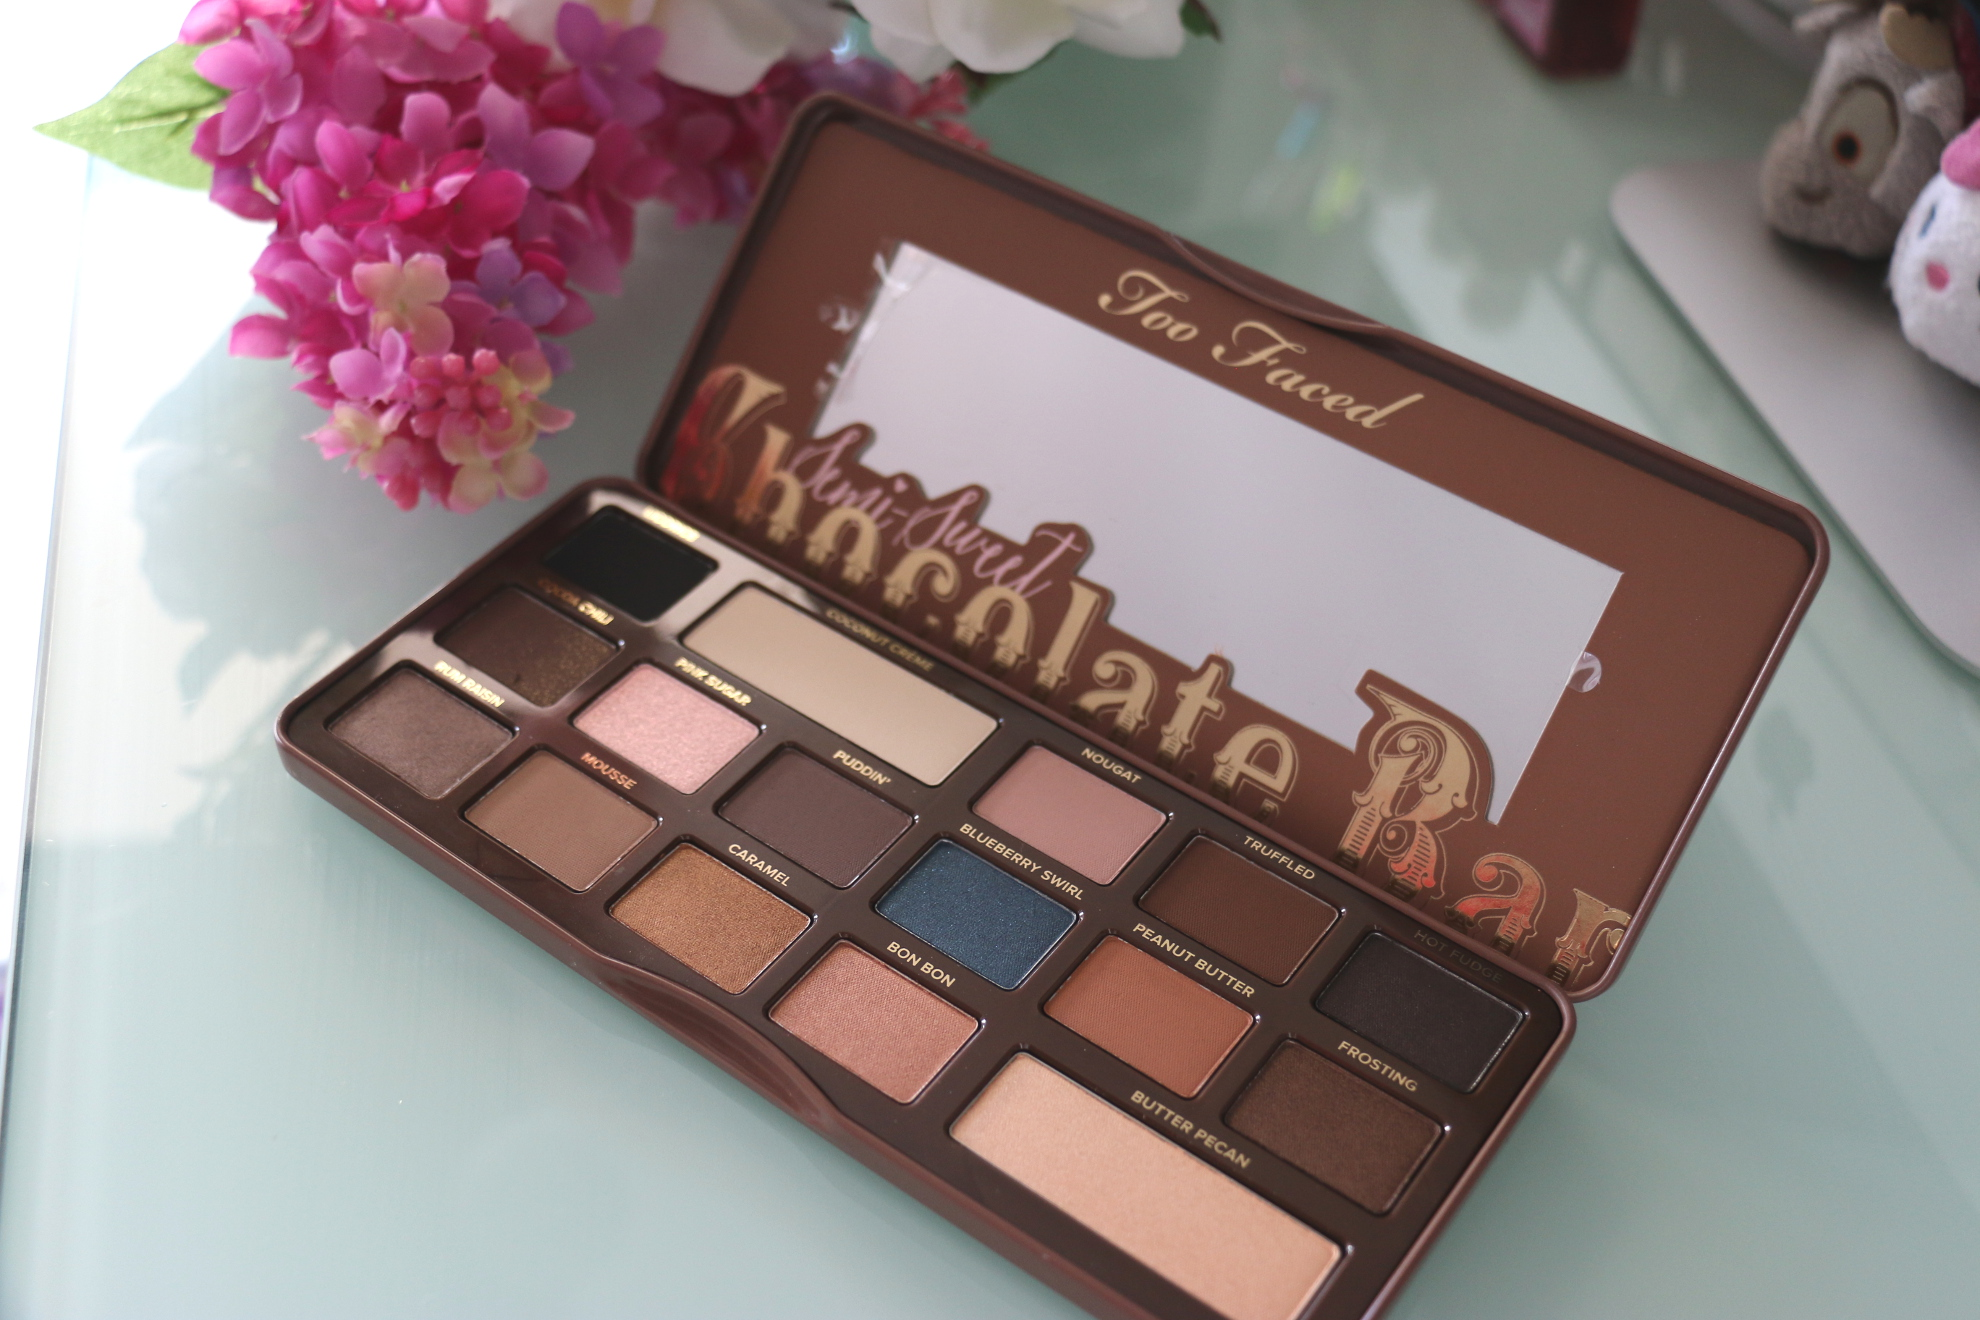 Semi-Sweet Chocolate Bar, Too Faced